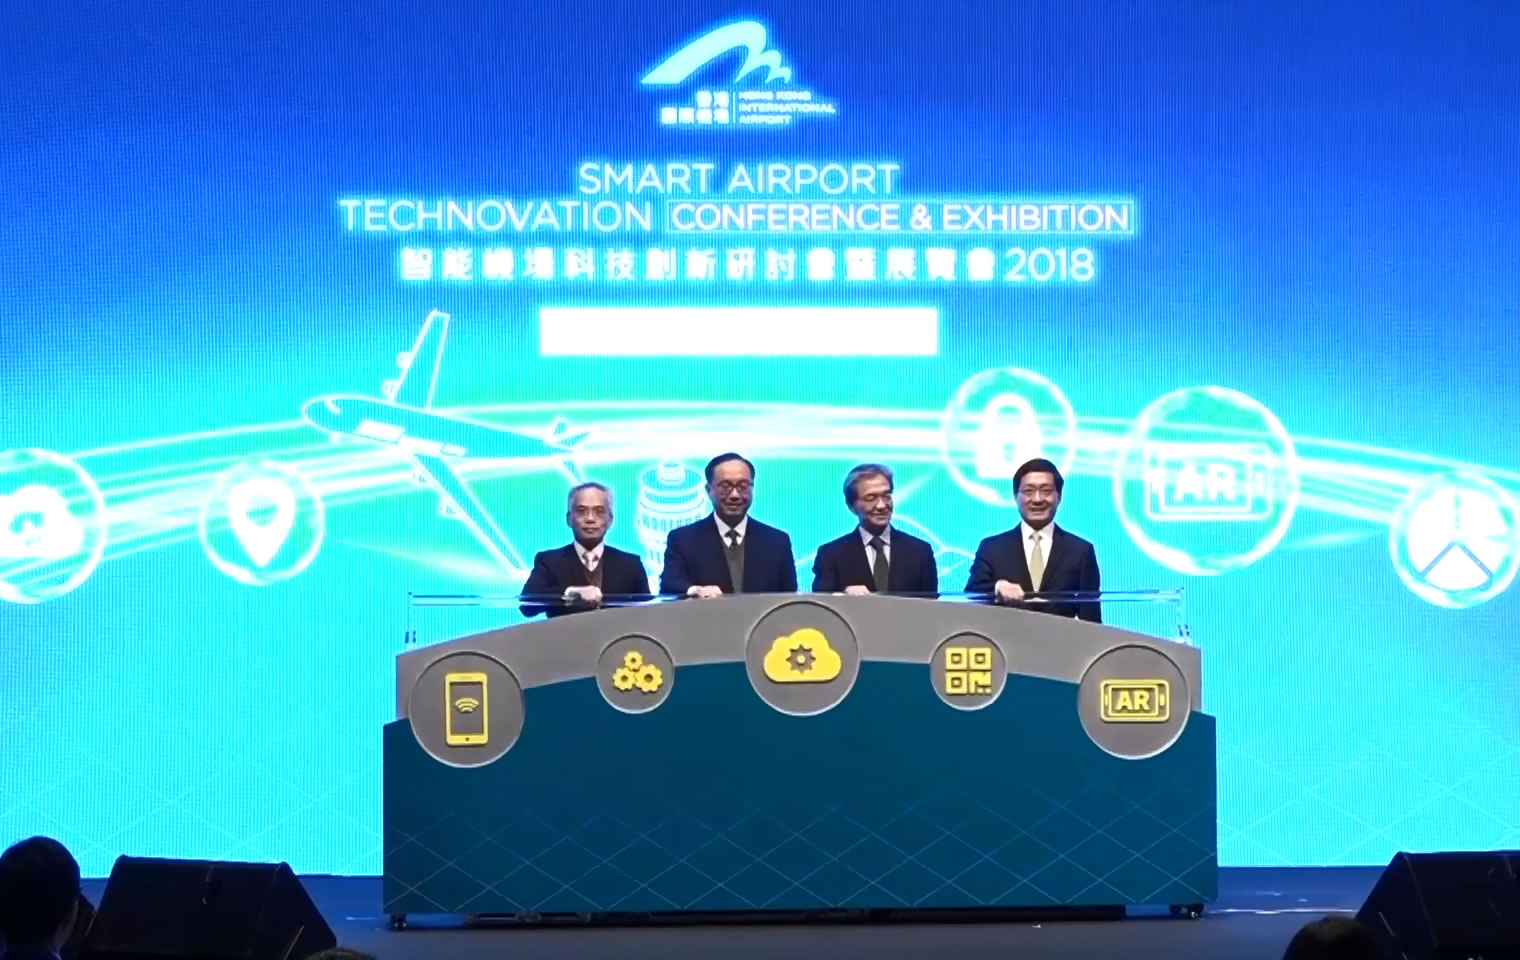 Smart Airport – Technovation Conference & Exhibition 2018